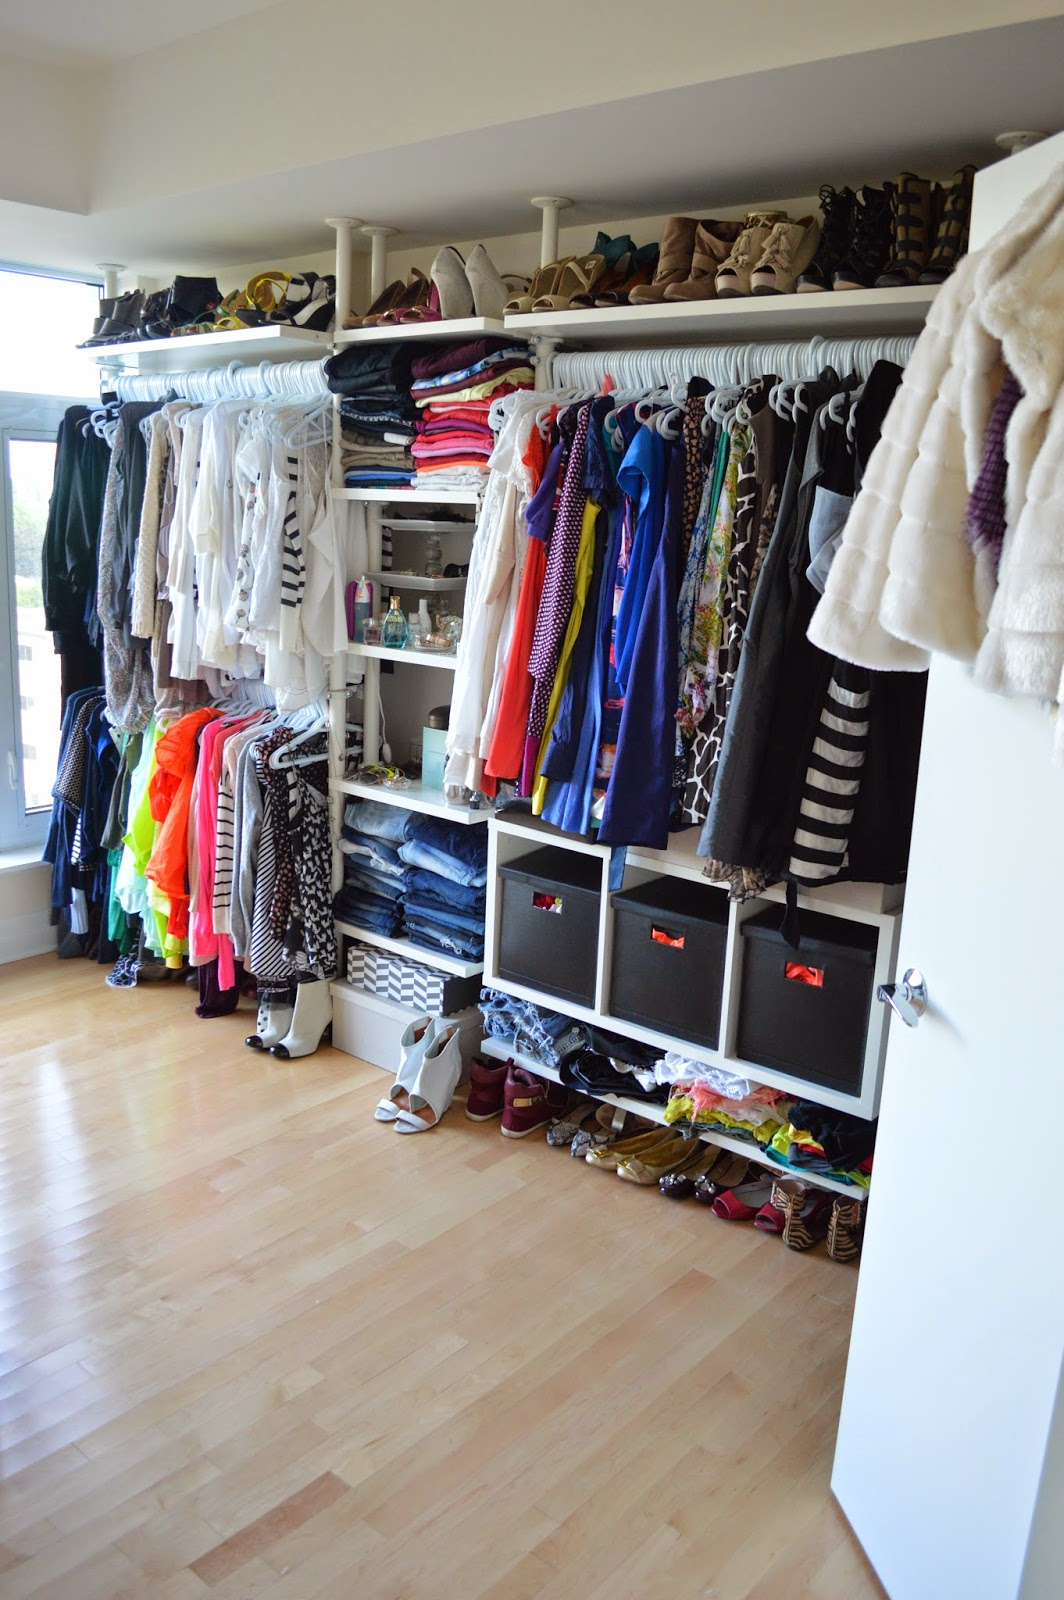 The Whole Closet Is A Customizable Stolmen System From Ikea, Which Can Be  Removed And Will Be Taken With Us When We Move To The Next Place.